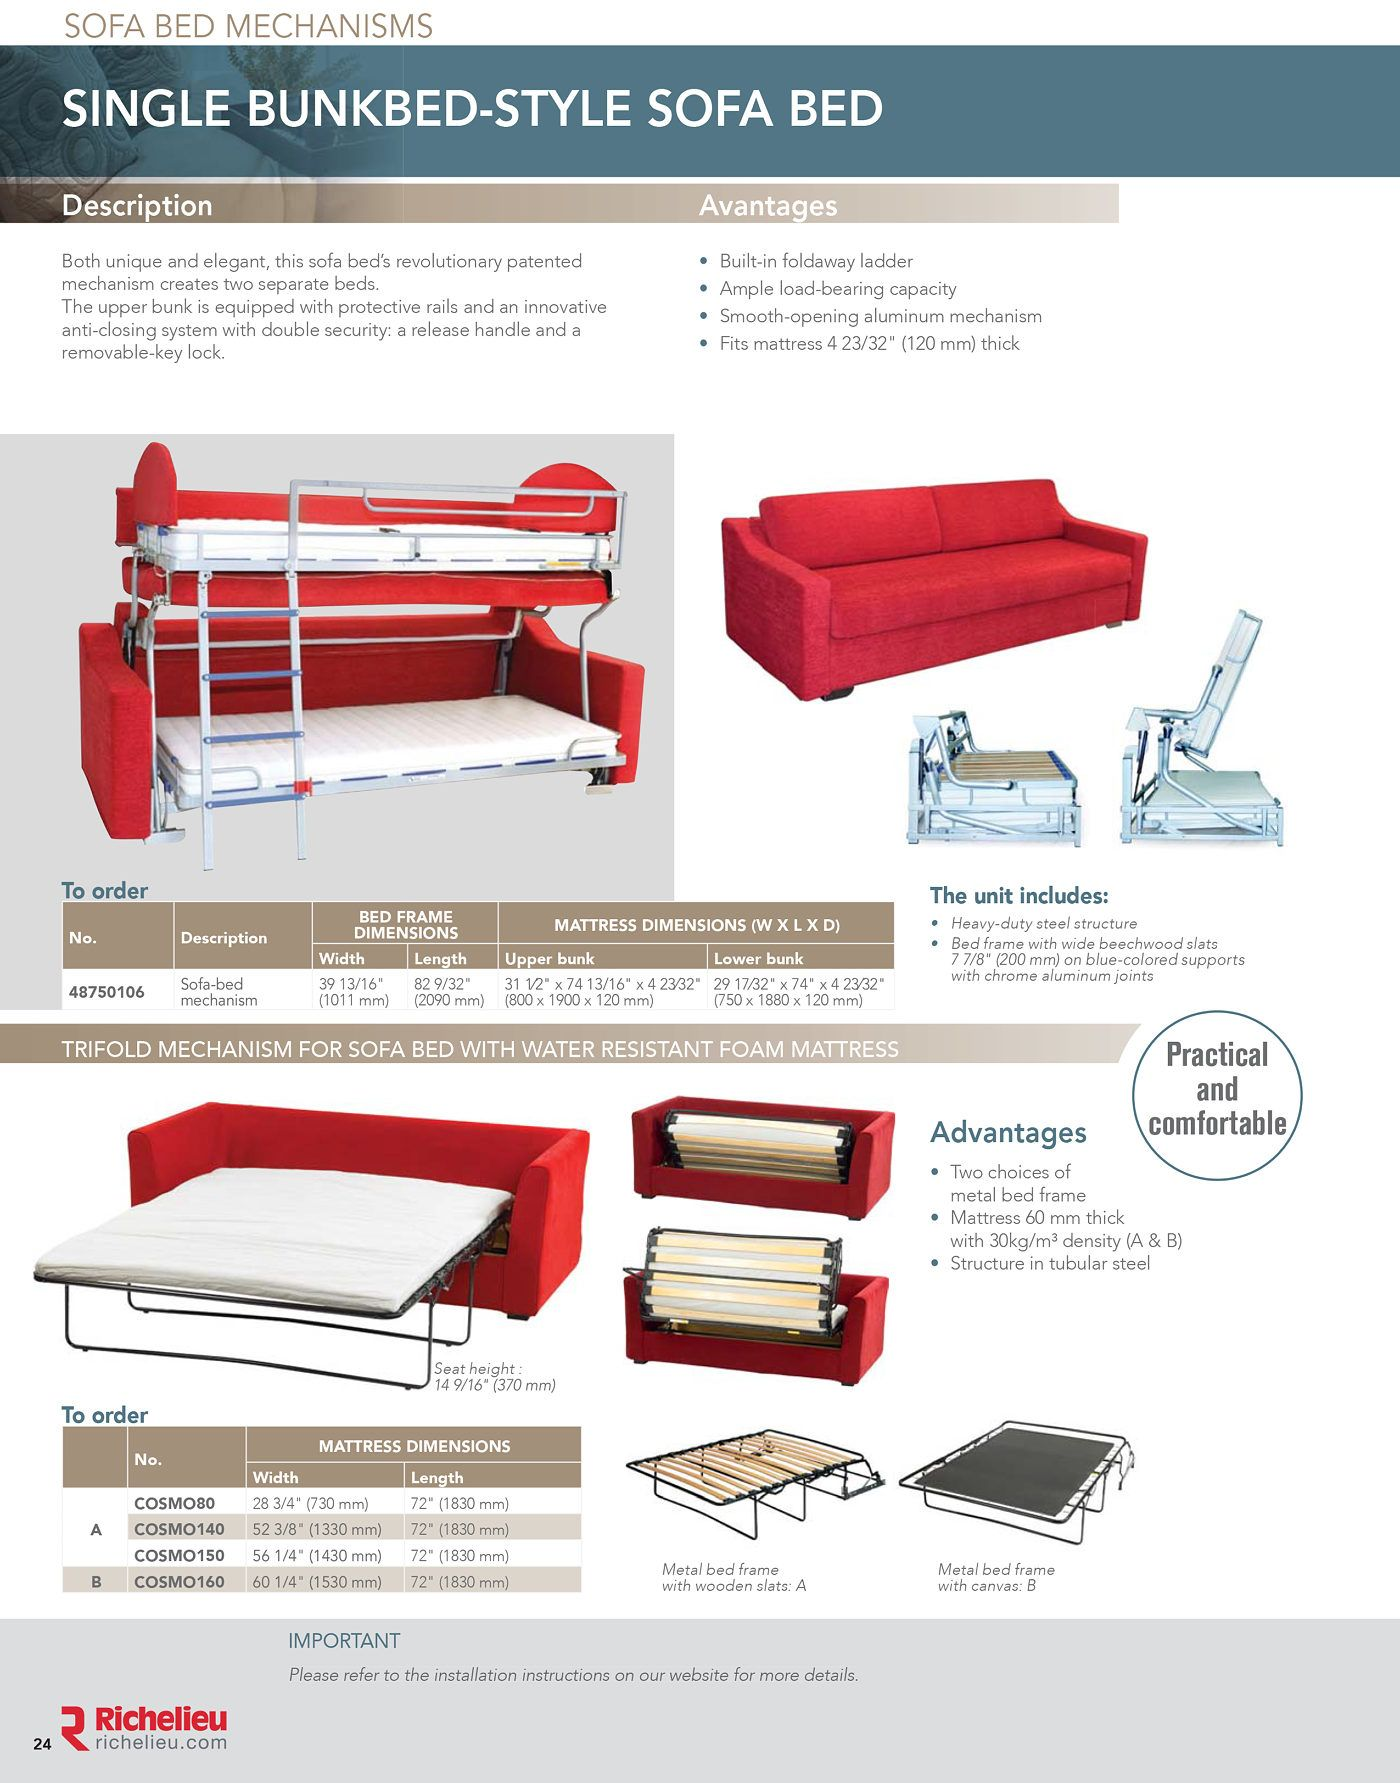 Richelieu Catalog Library Bed Mechanisms Page 24 Sofa Bed